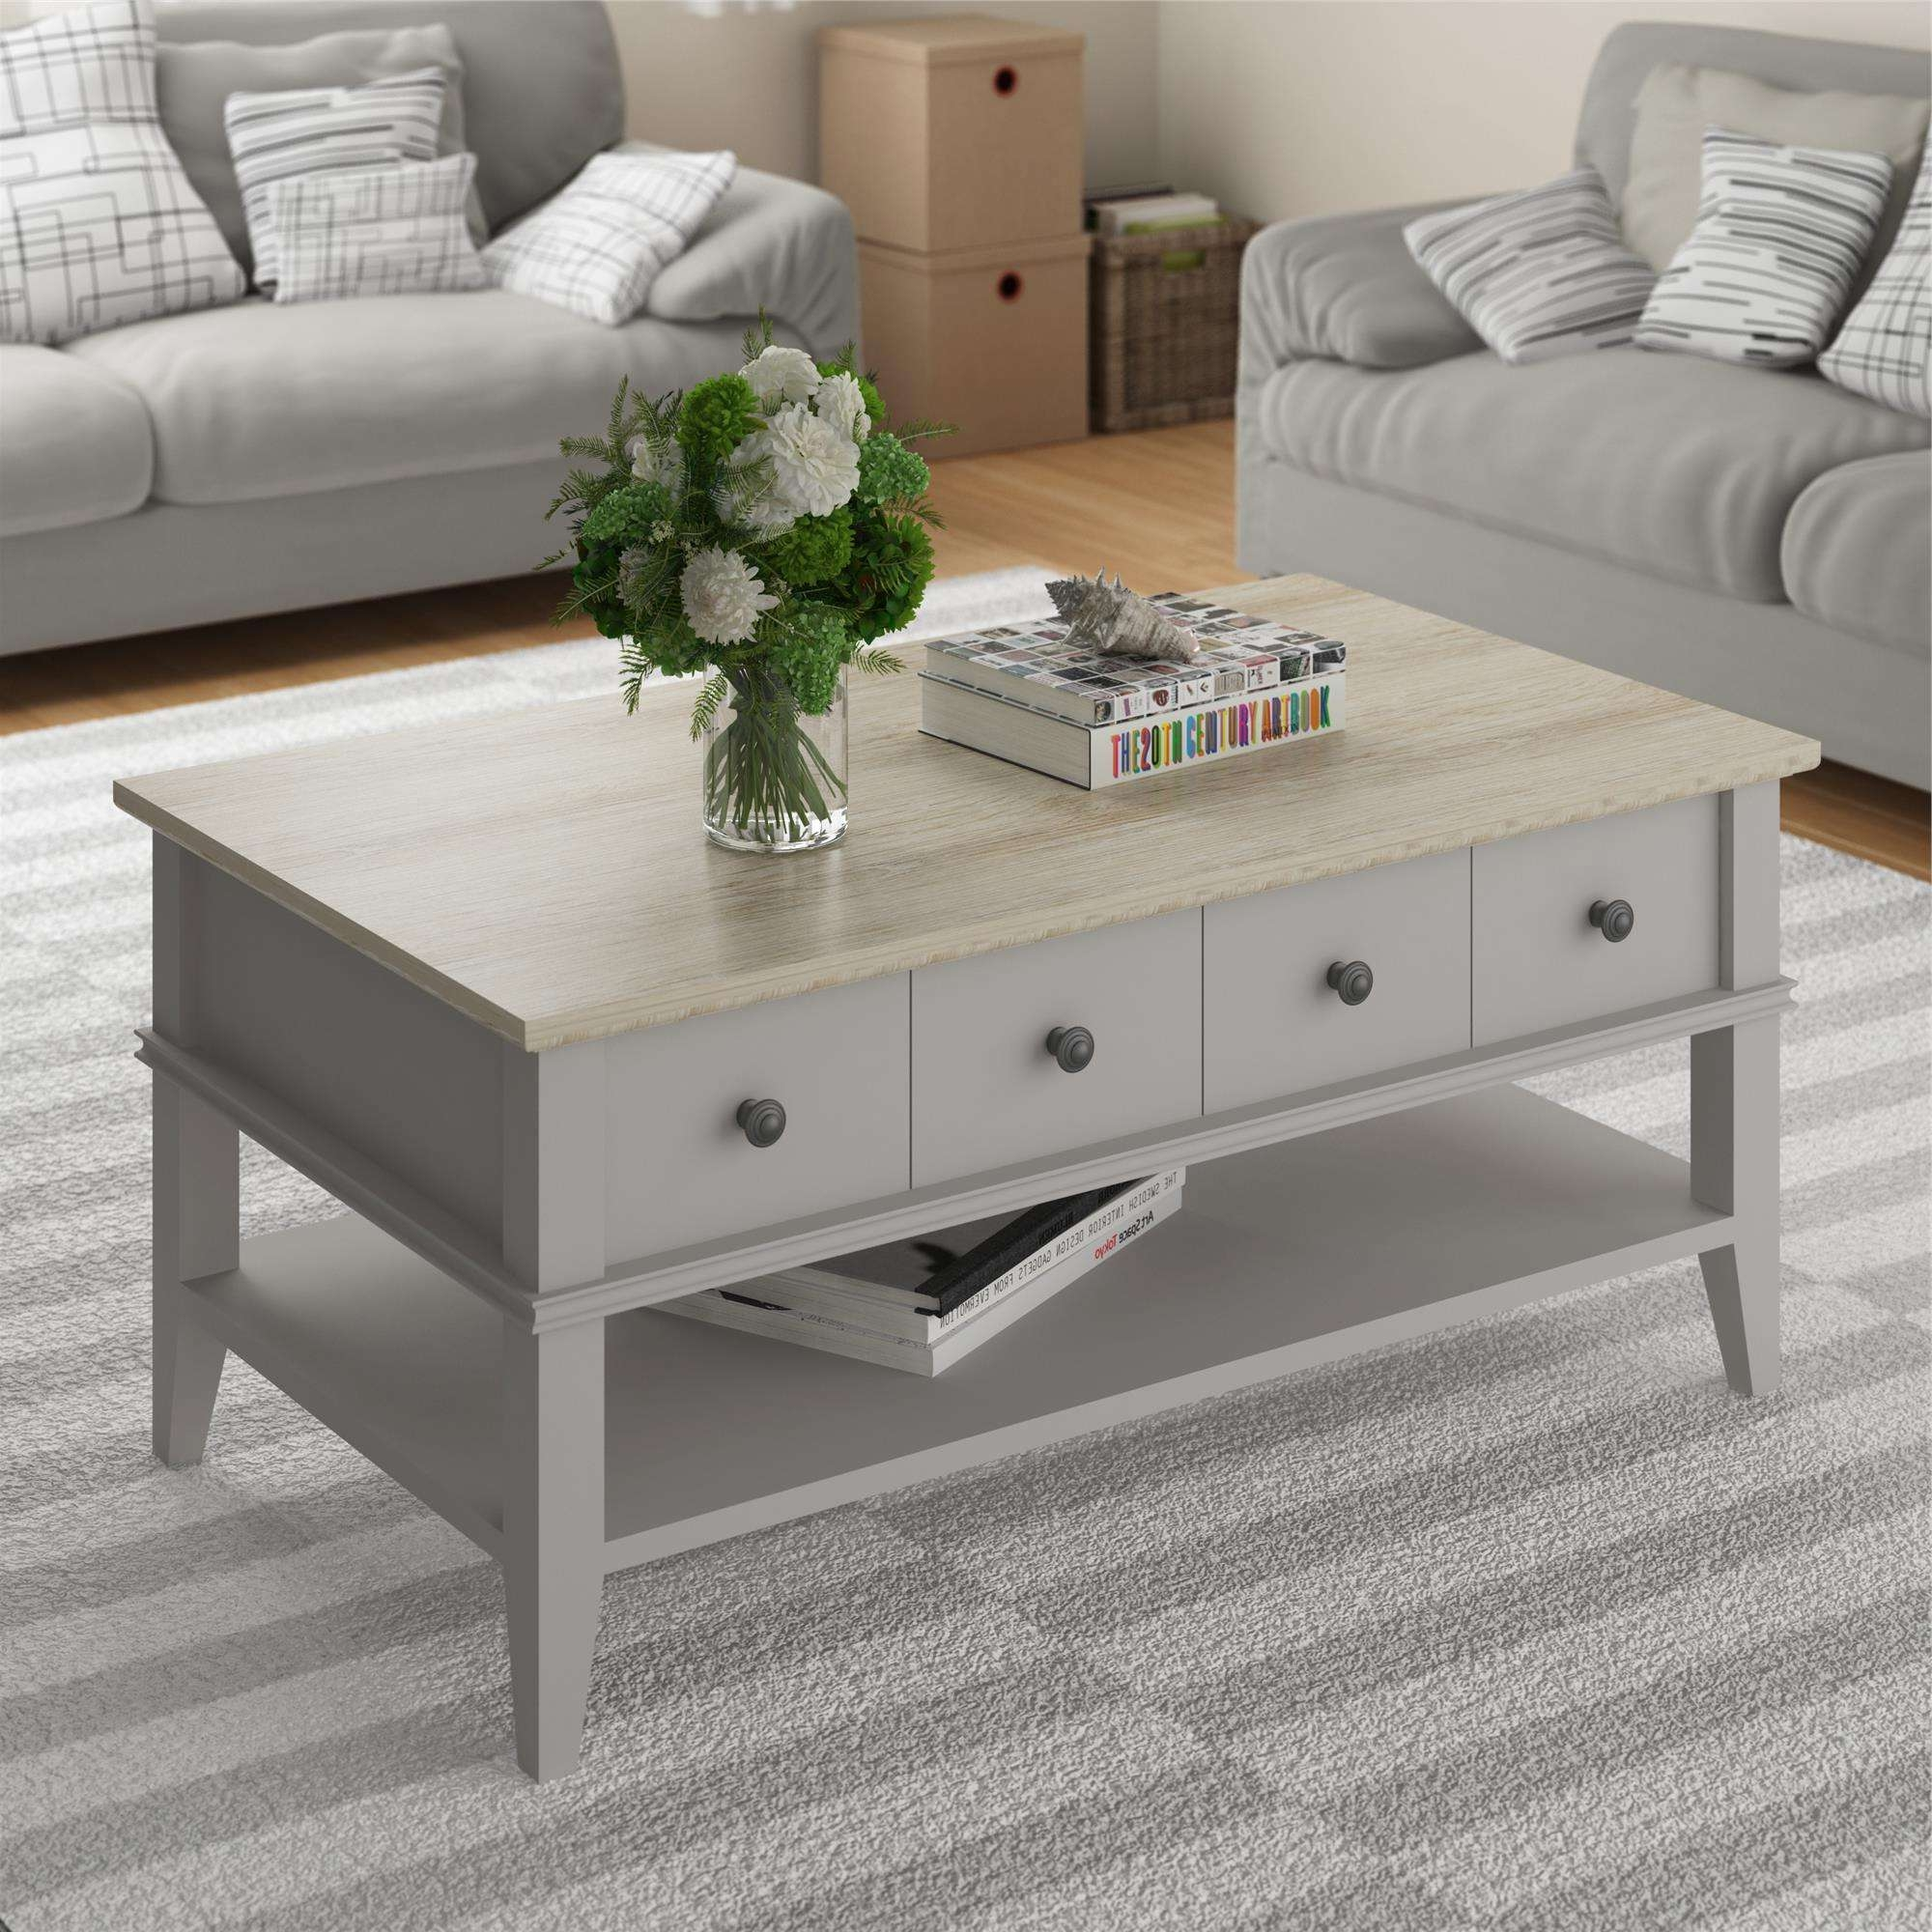 Most Recent Grey Wood Coffee Tables In Ameriwood Furniture (View 15 of 20)